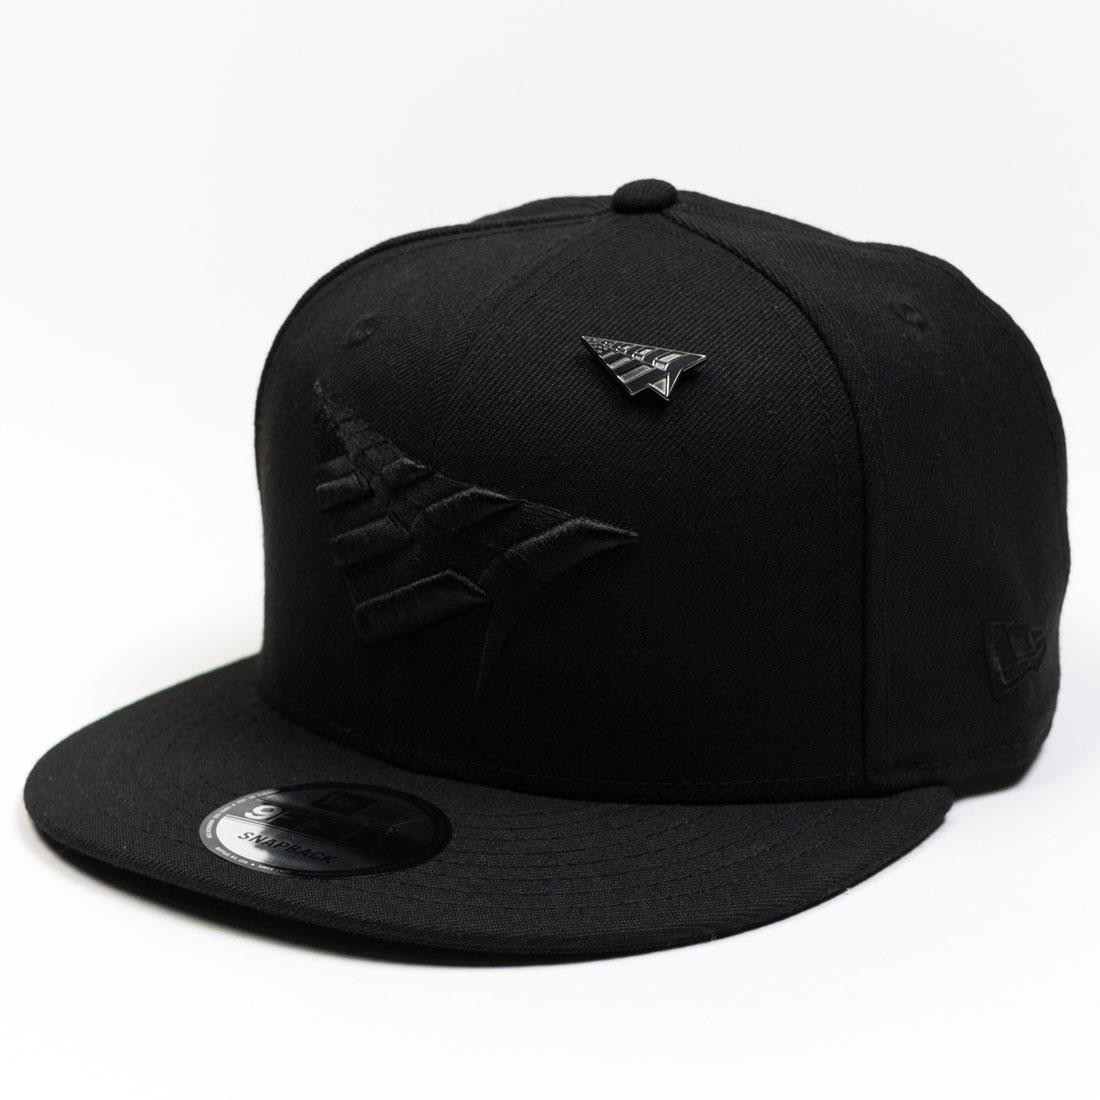 Roc Nation The Crown Snapback With Pin and Black Undervisor black black 800fd009c50a